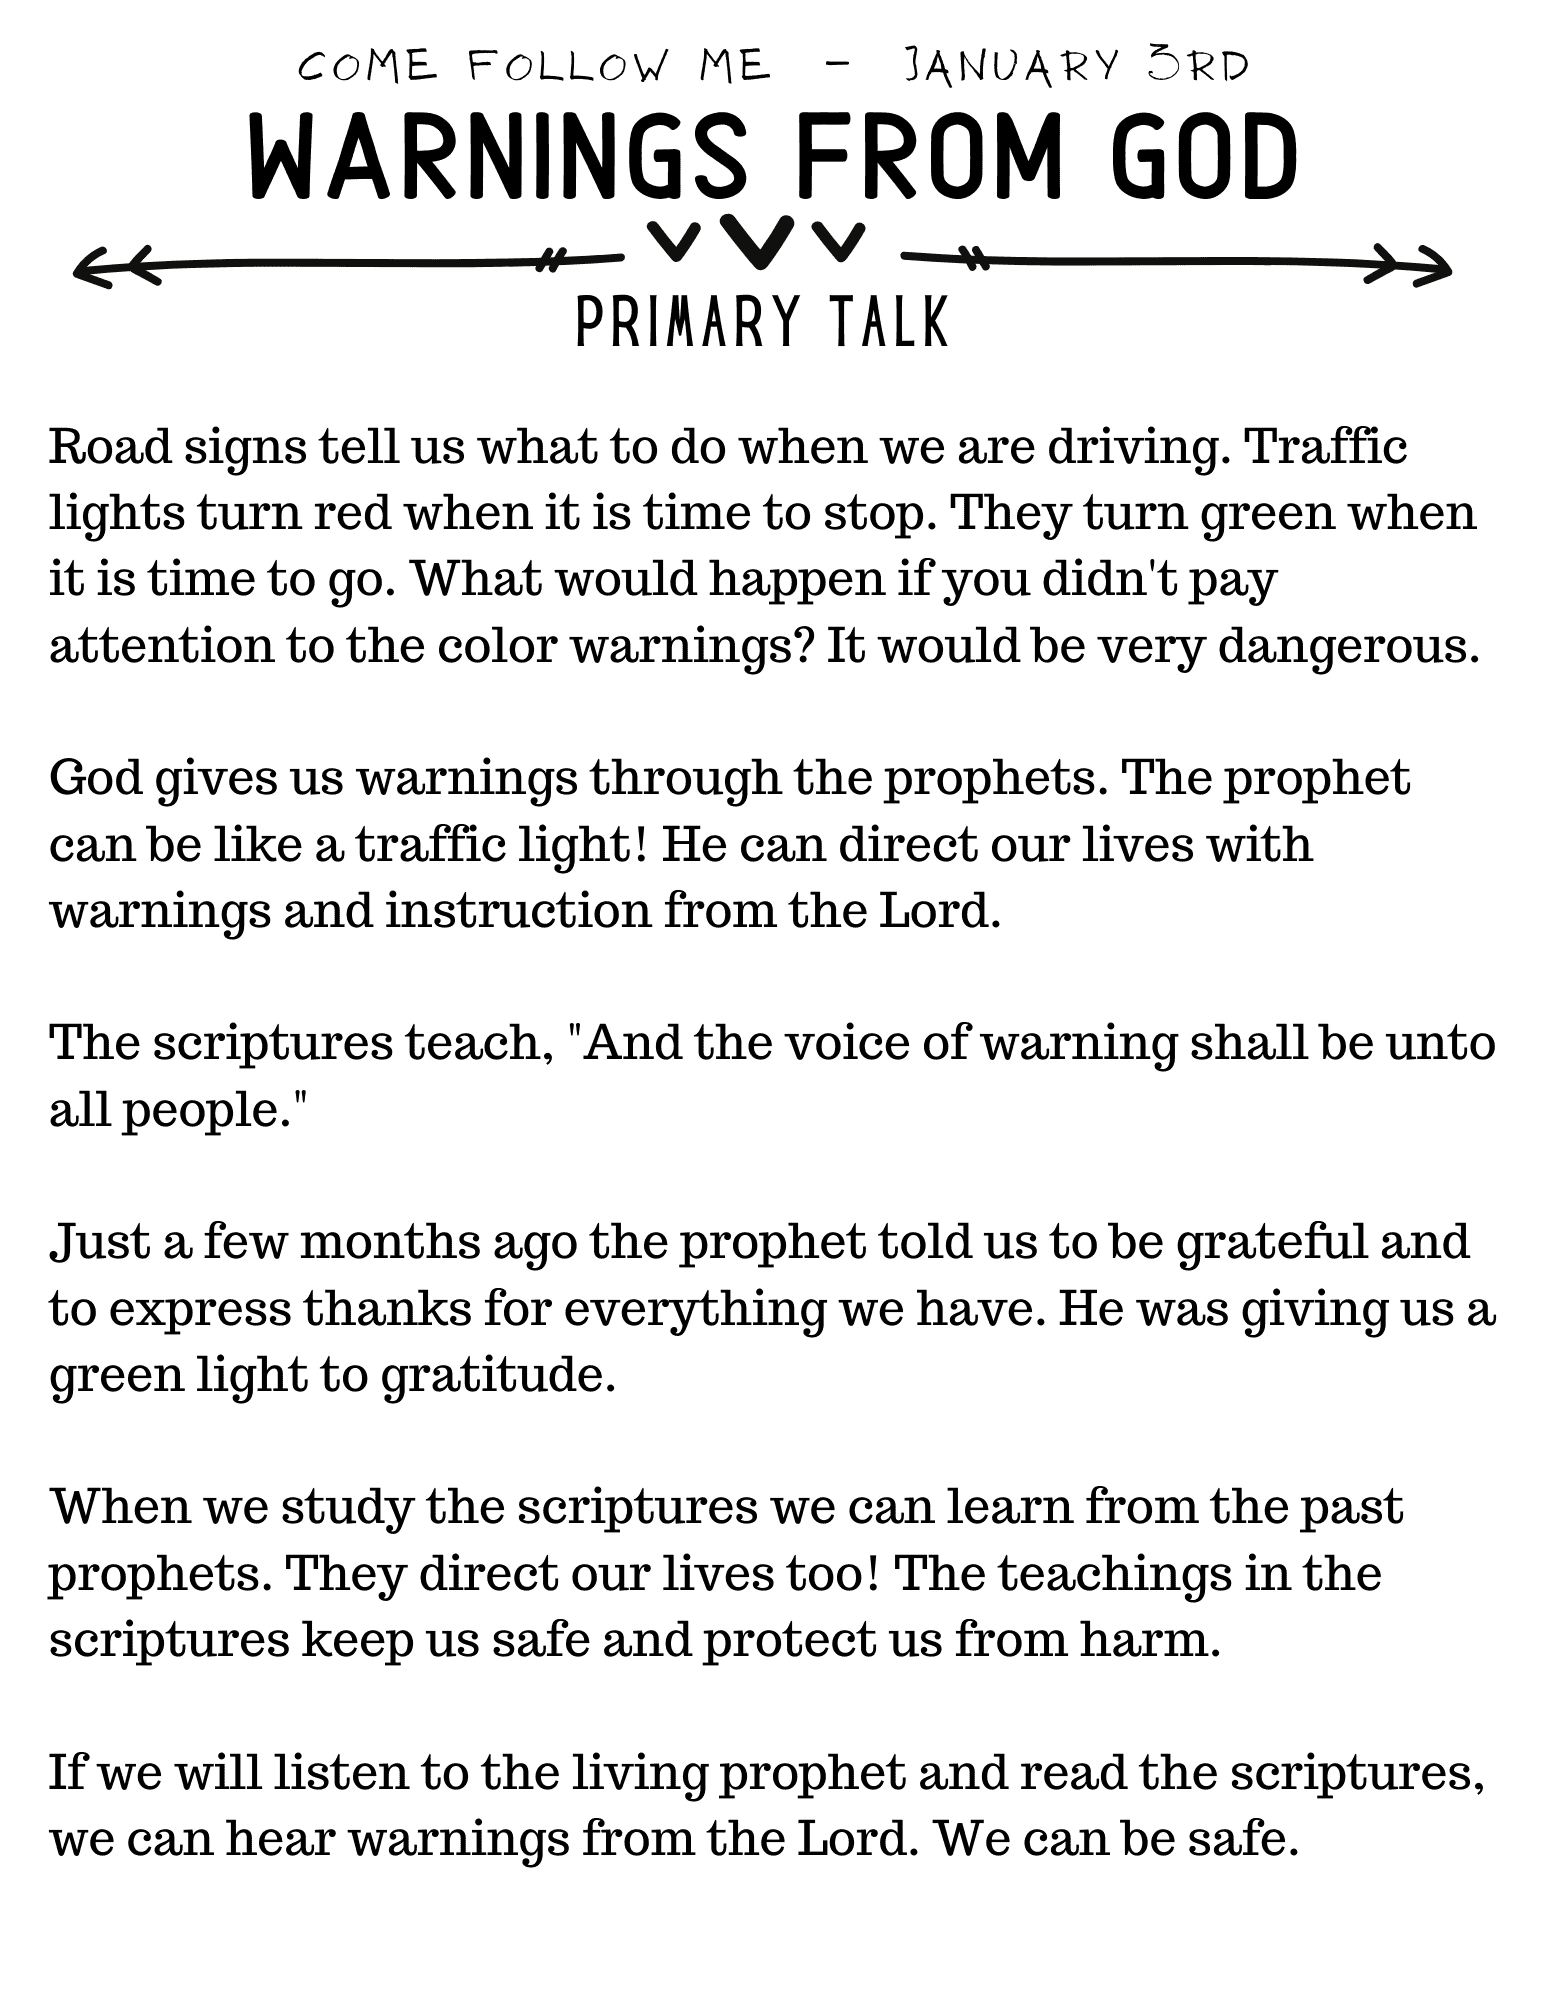 Primary Talk Warnings From God